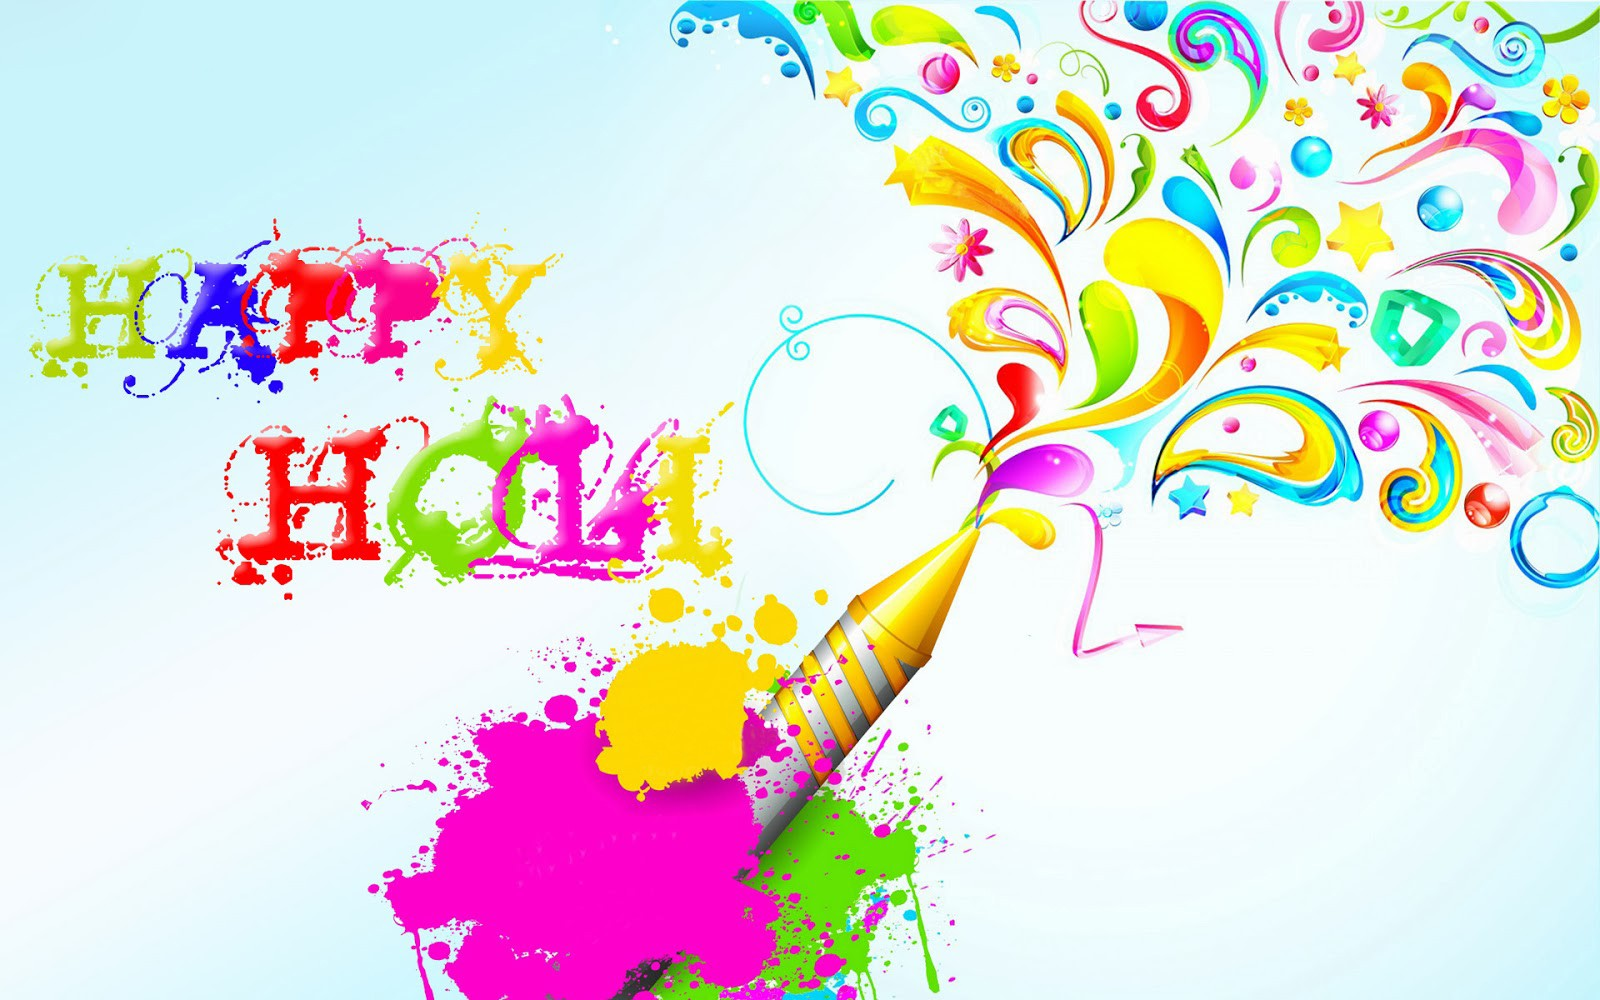 happy holi 2018 wallpaper for facebook whatsapp twitter